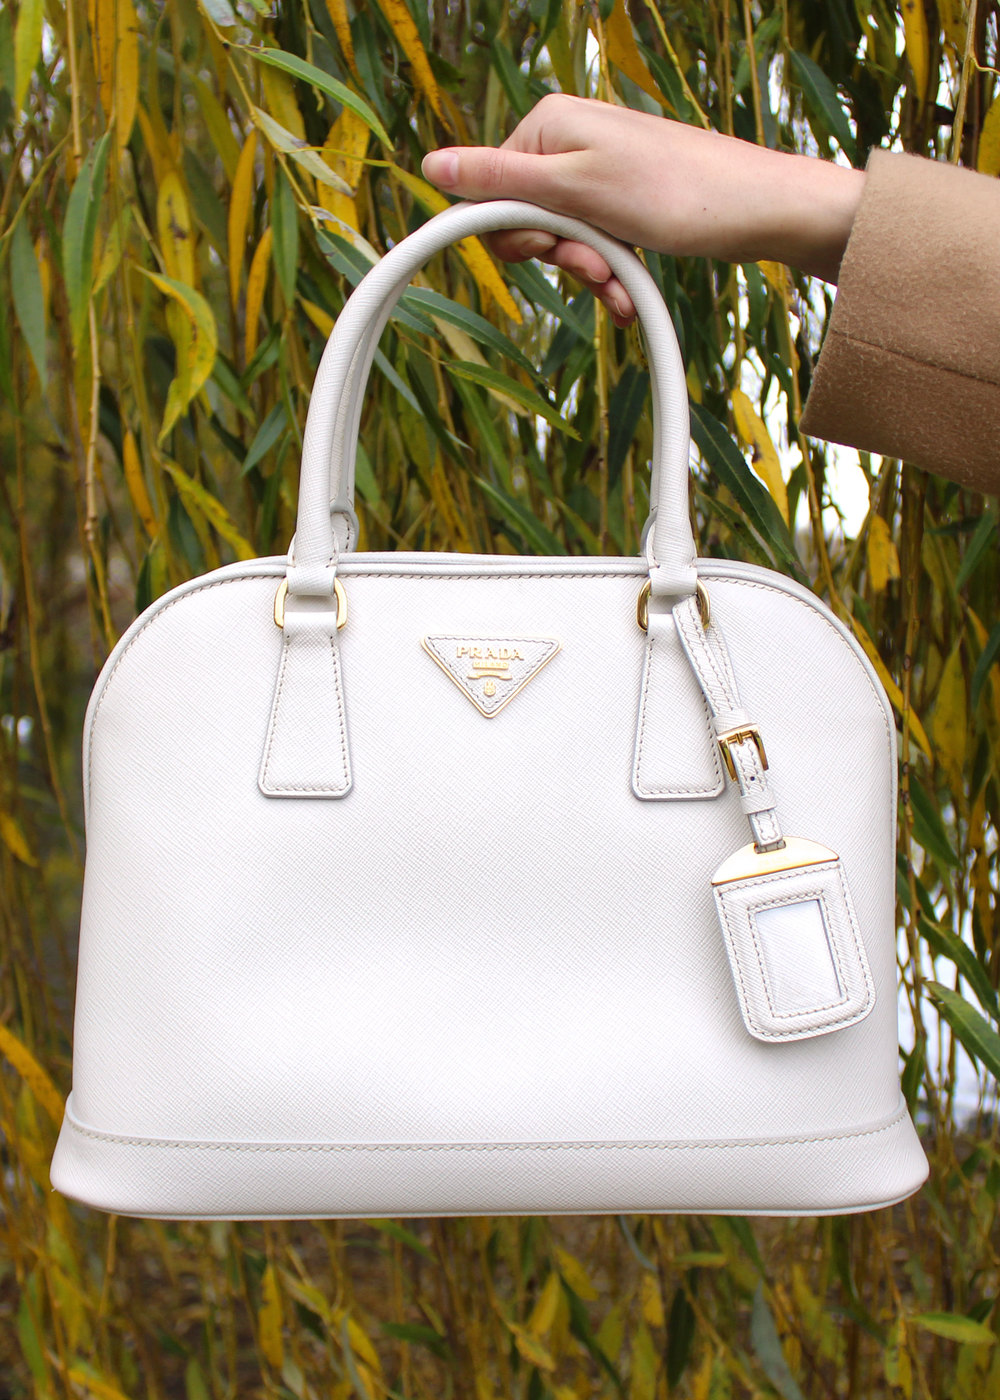 White Prada saffiano leather bag.